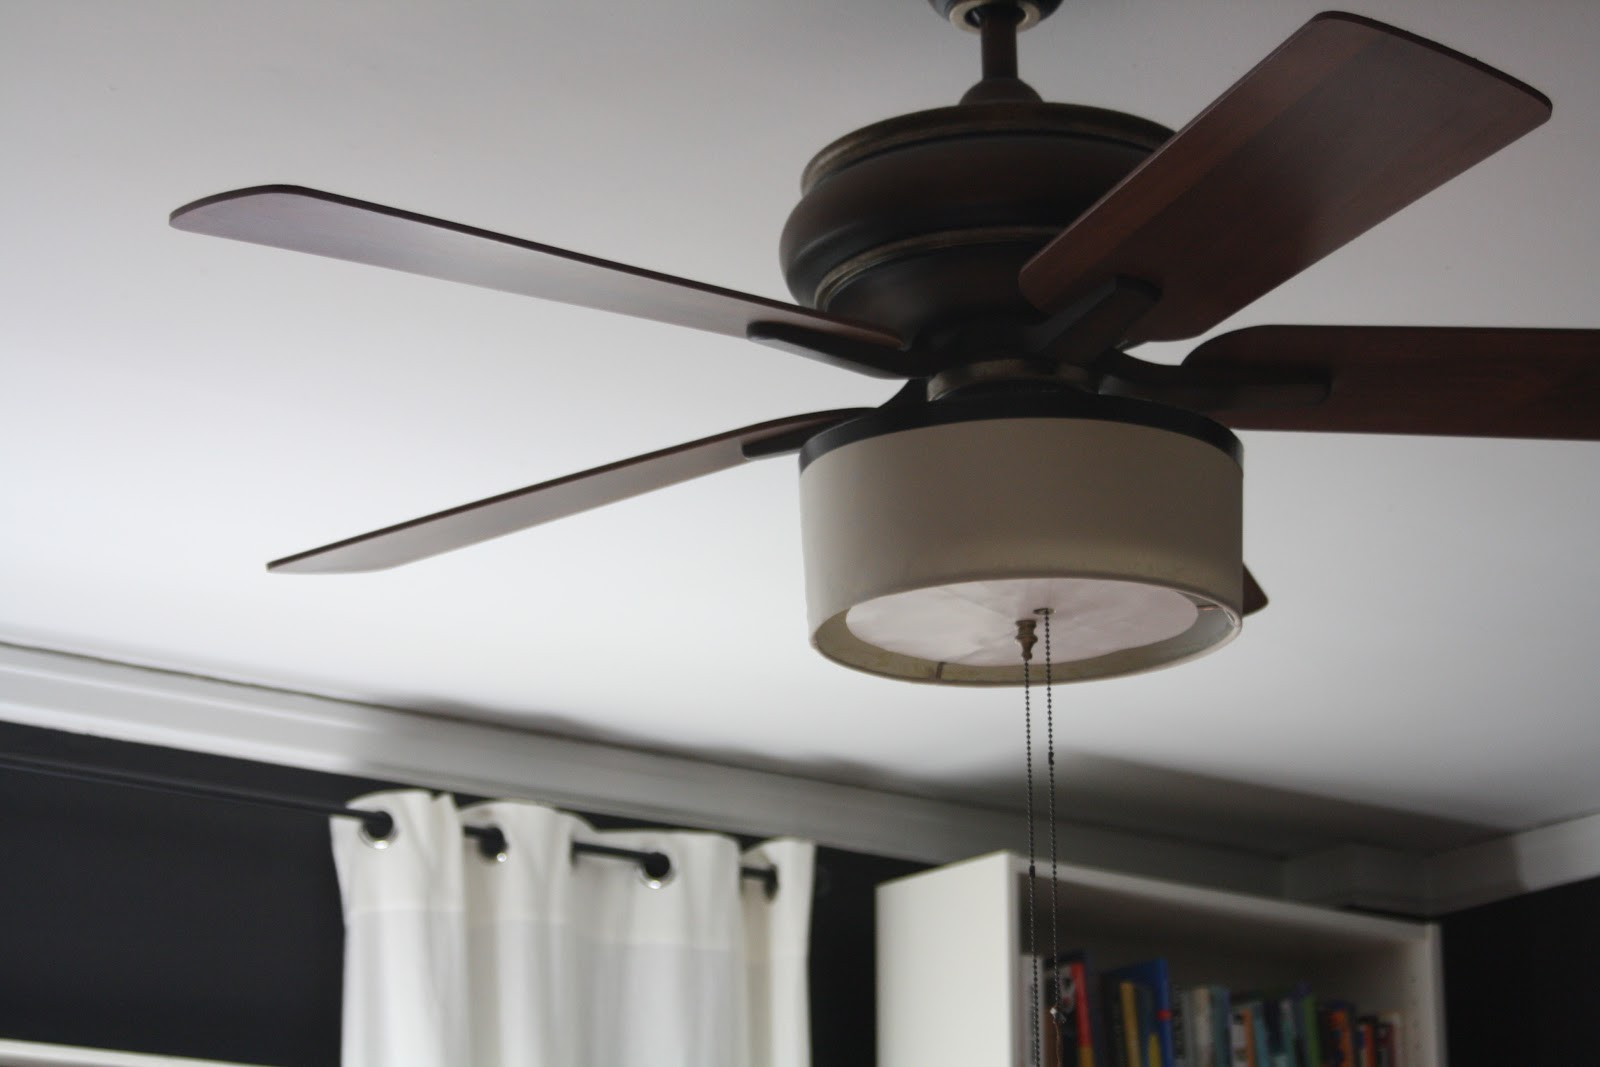 DIY drum shade attached to celing fan